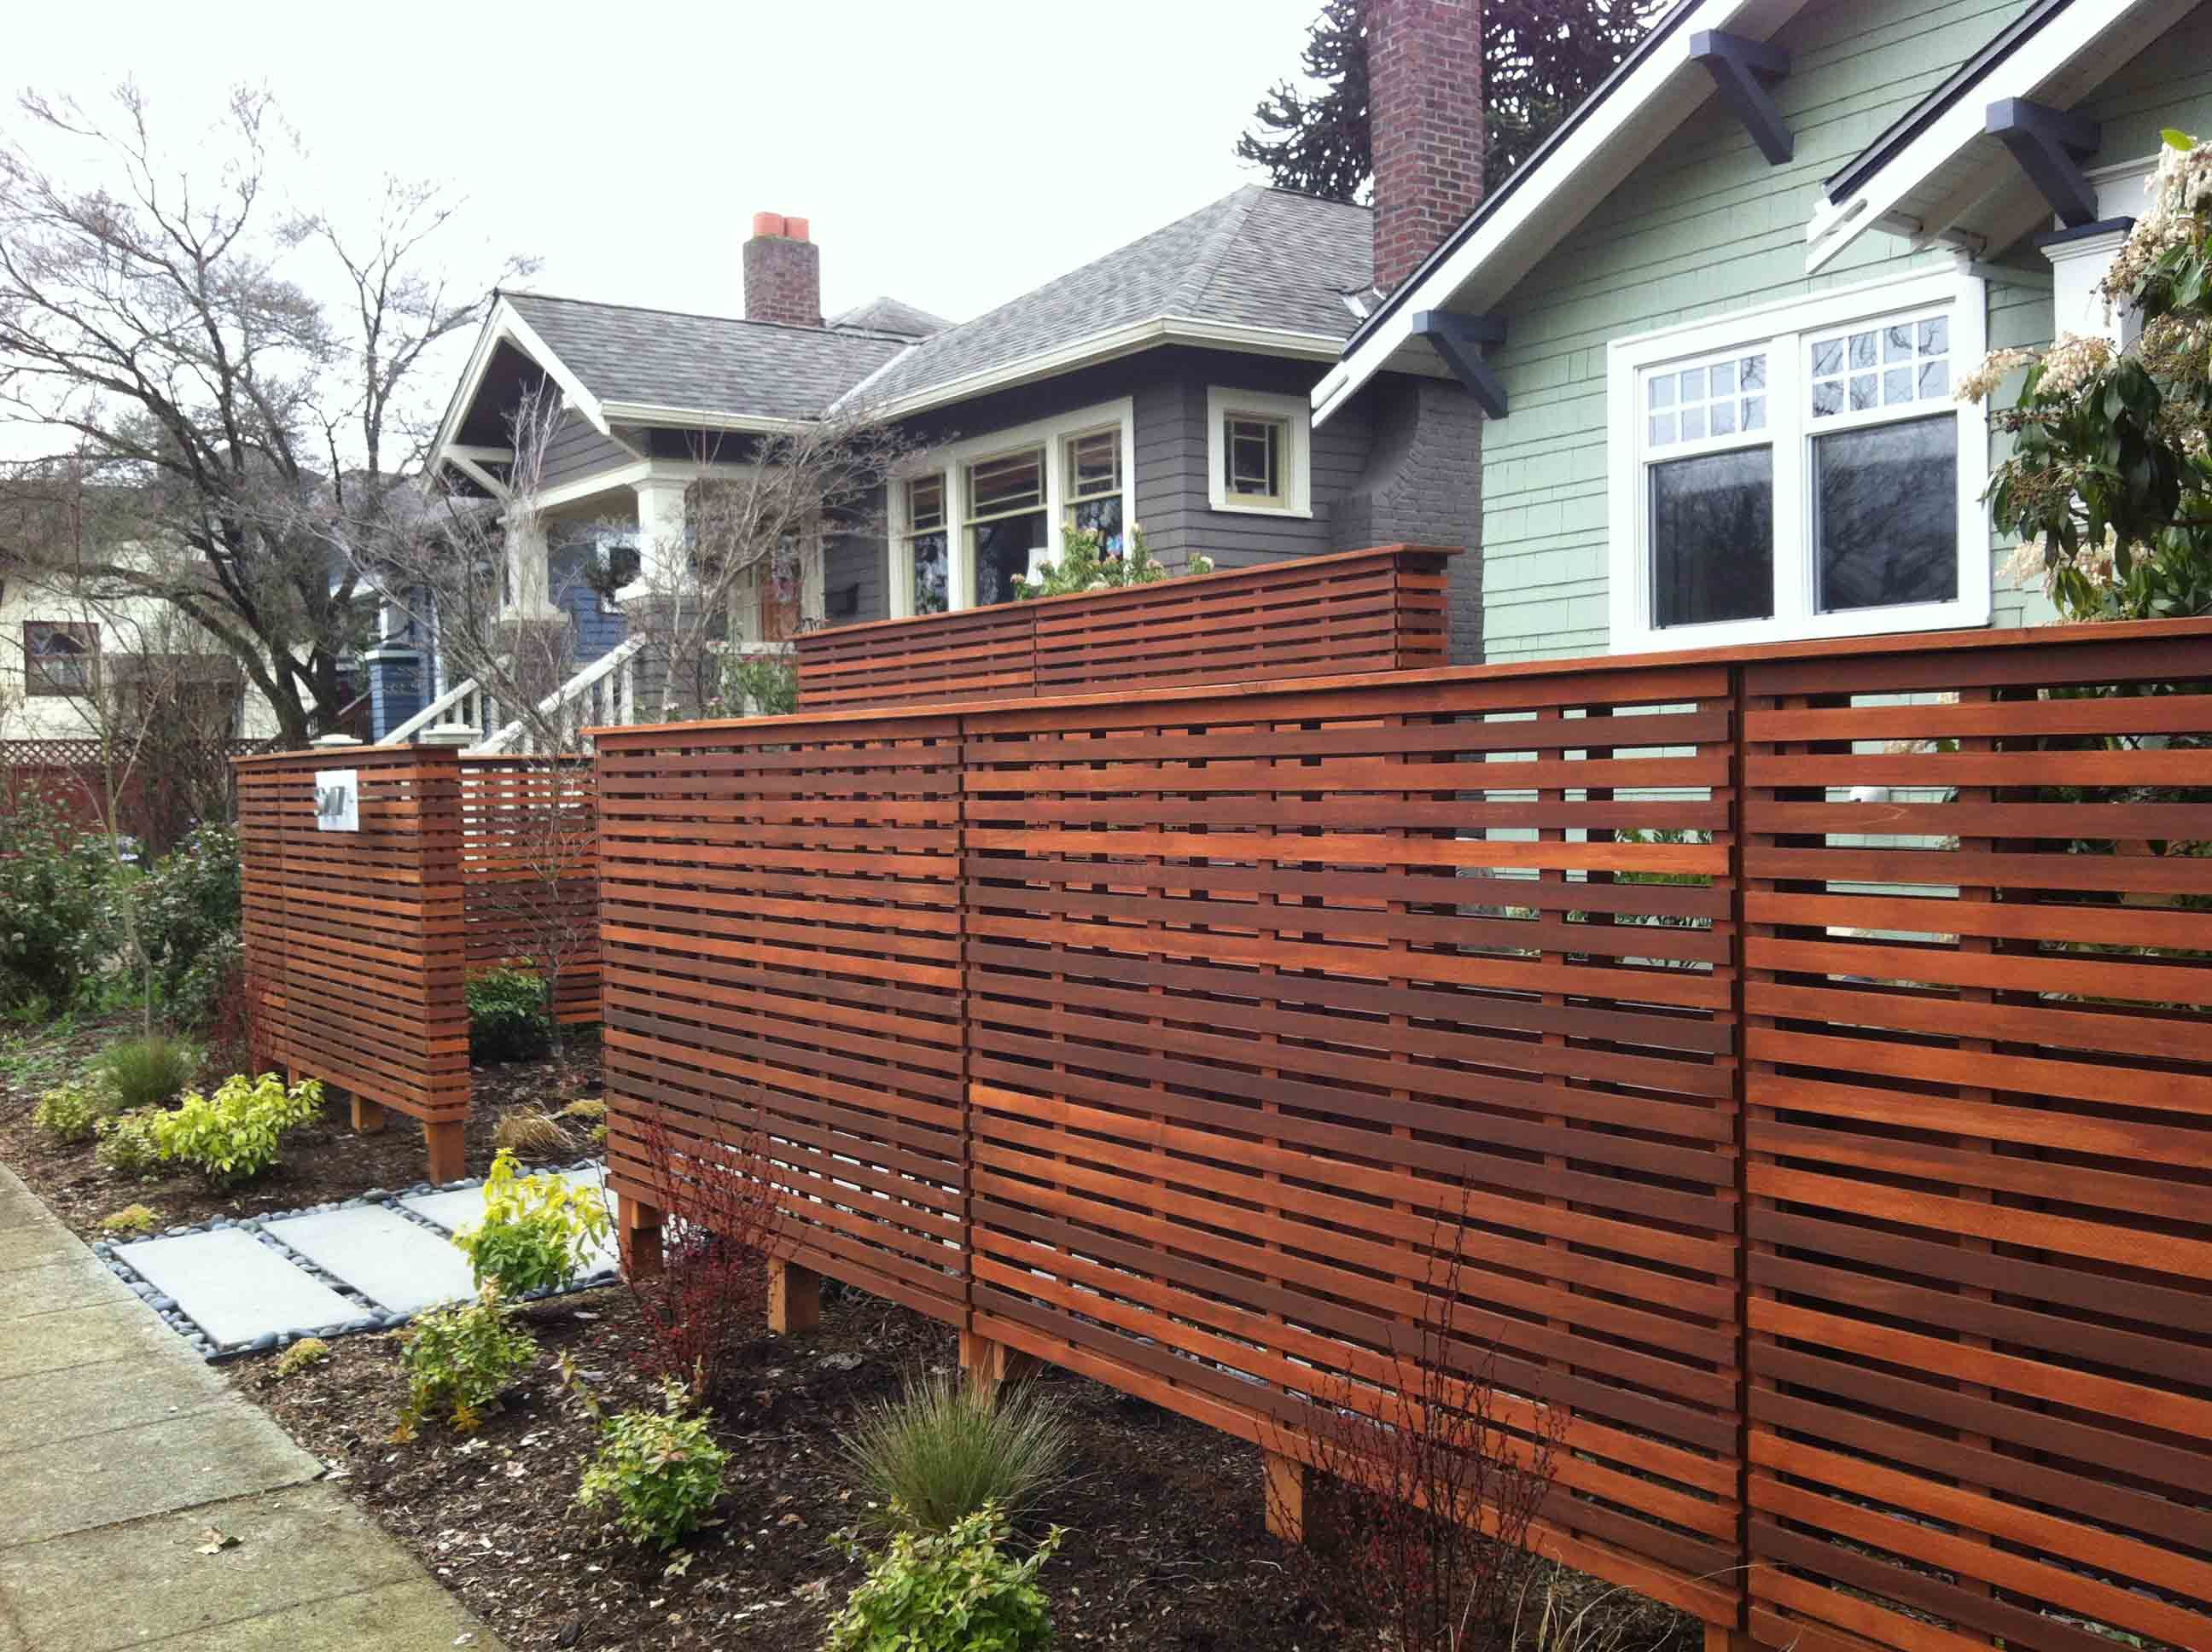 Fencing ideas for front yards - Sturdy Fence Ideas For Frontyard And Backyard Pictures Spectacular Half Horizontal Wooden Rail Fence Ideas For Front Yard Landscaping Tiny House Tricks